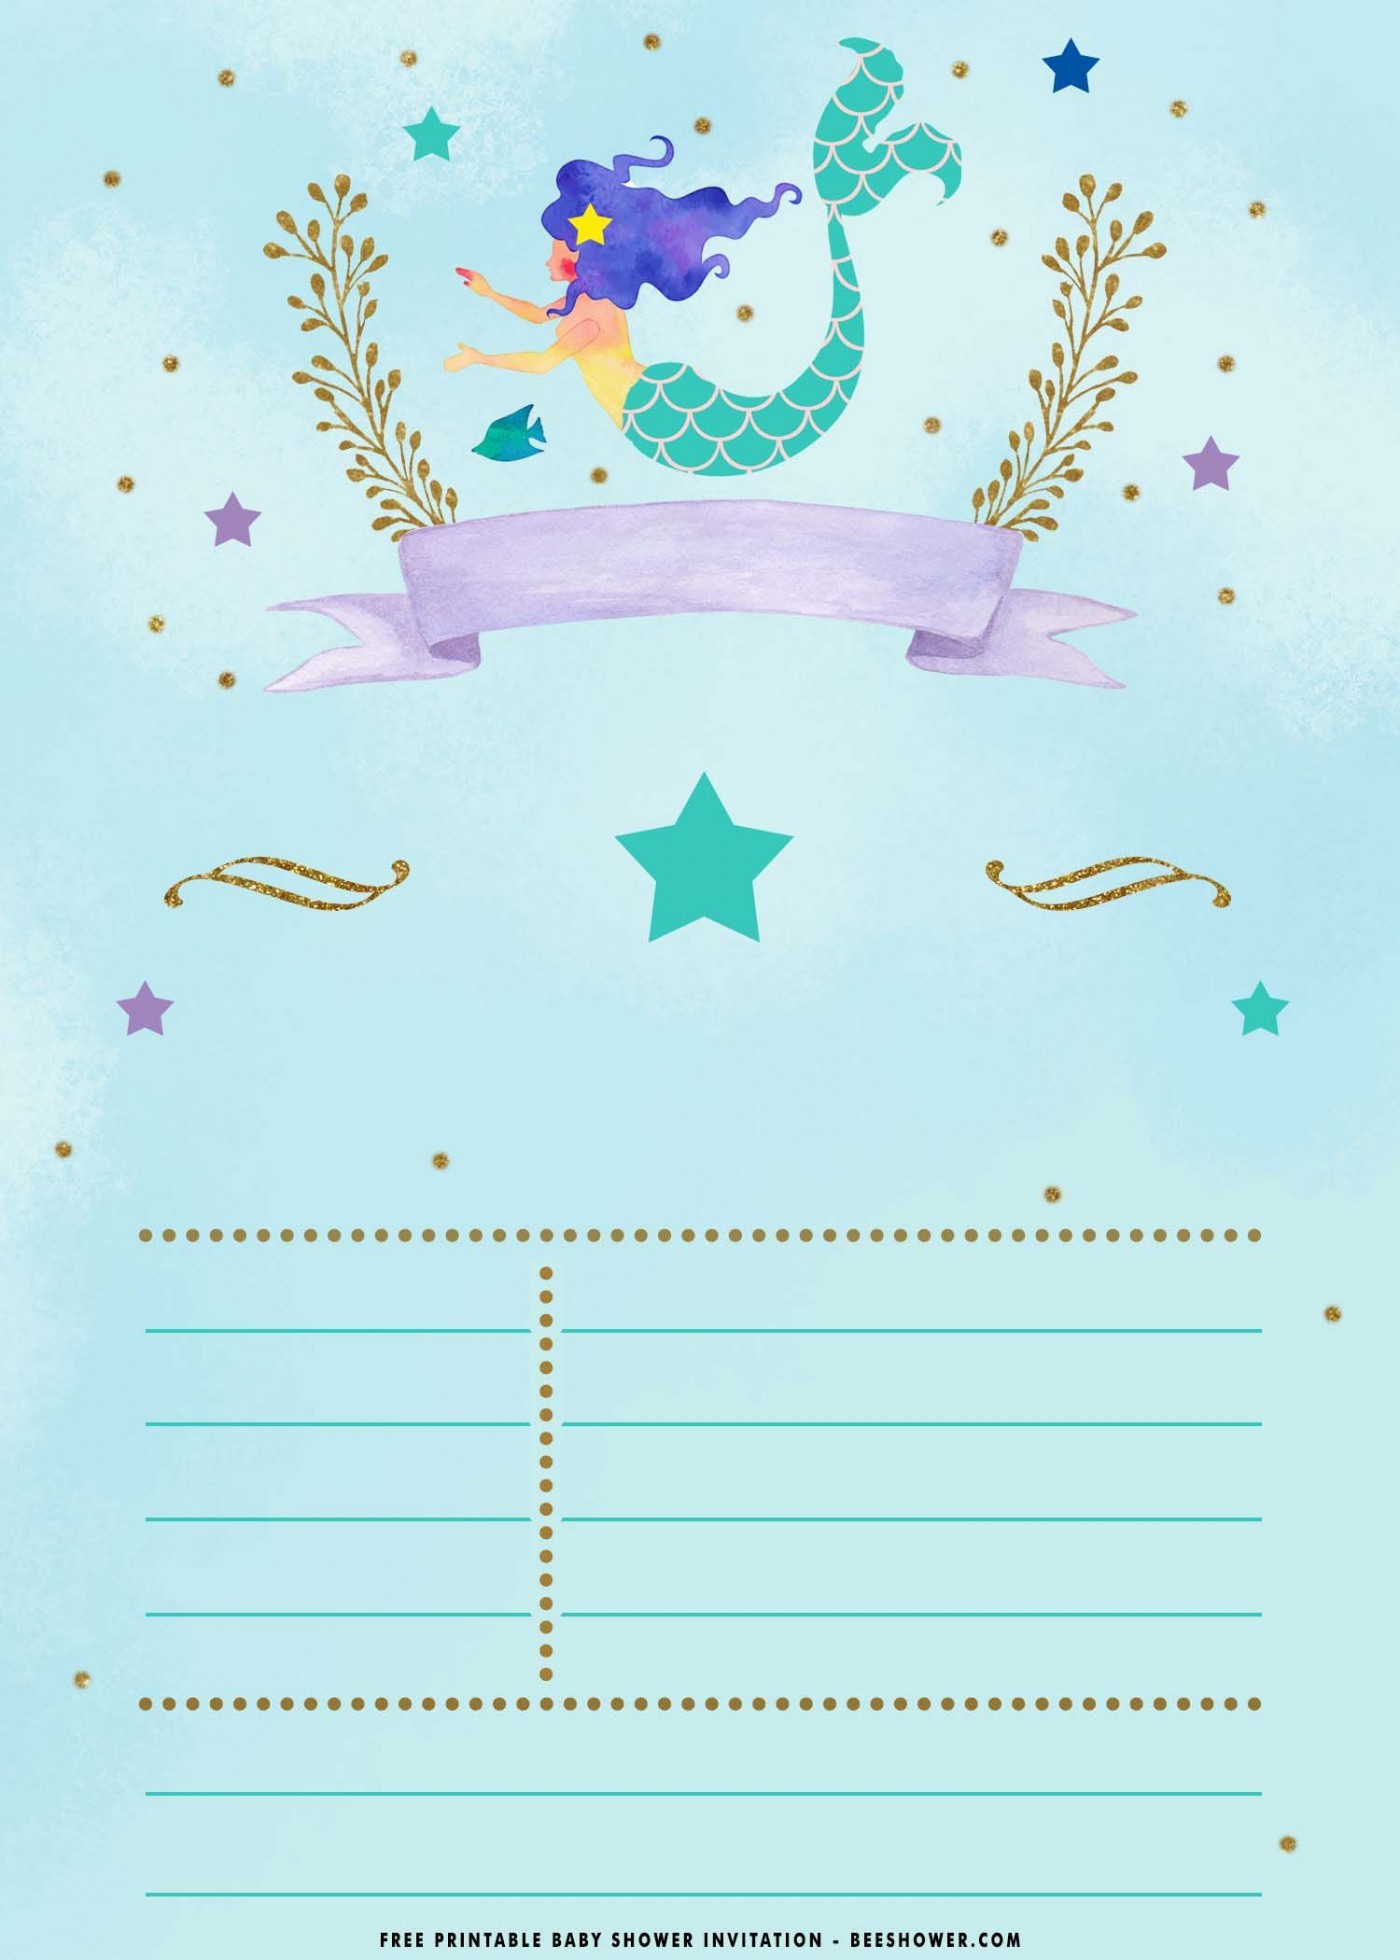 010 Breathtaking Free Mermaid Invitation Template Design  Download Printable Little Birthday Baby Shower1400